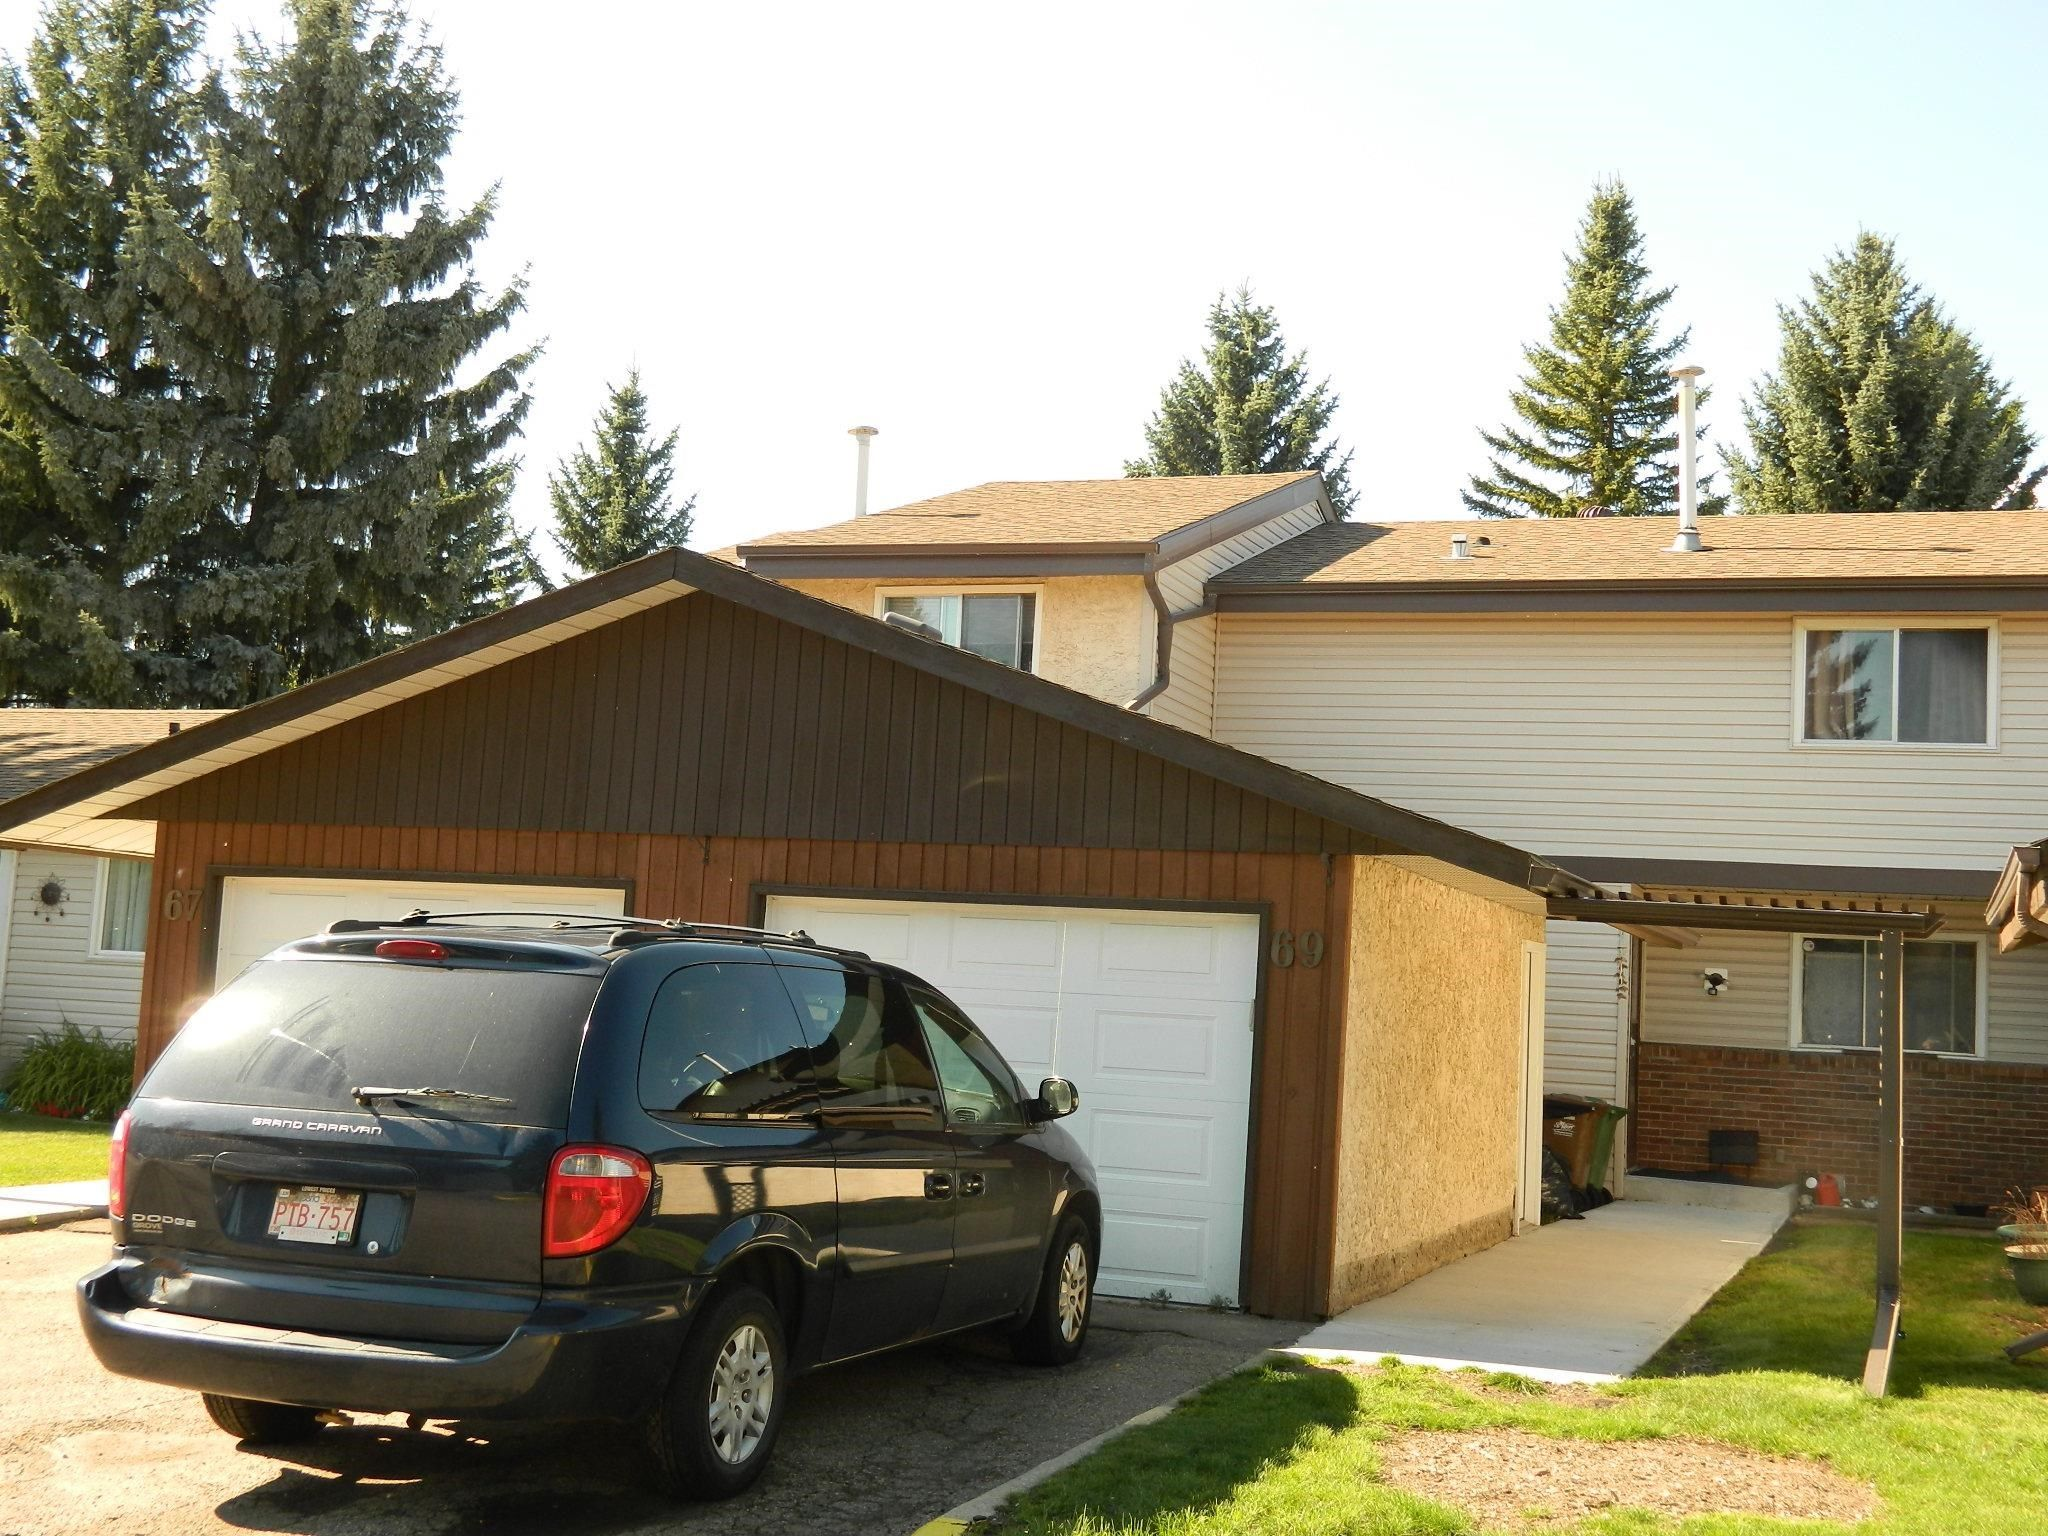 Main Photo: 69 Forest Grove: St. Albert Townhouse for sale : MLS®# E4261846